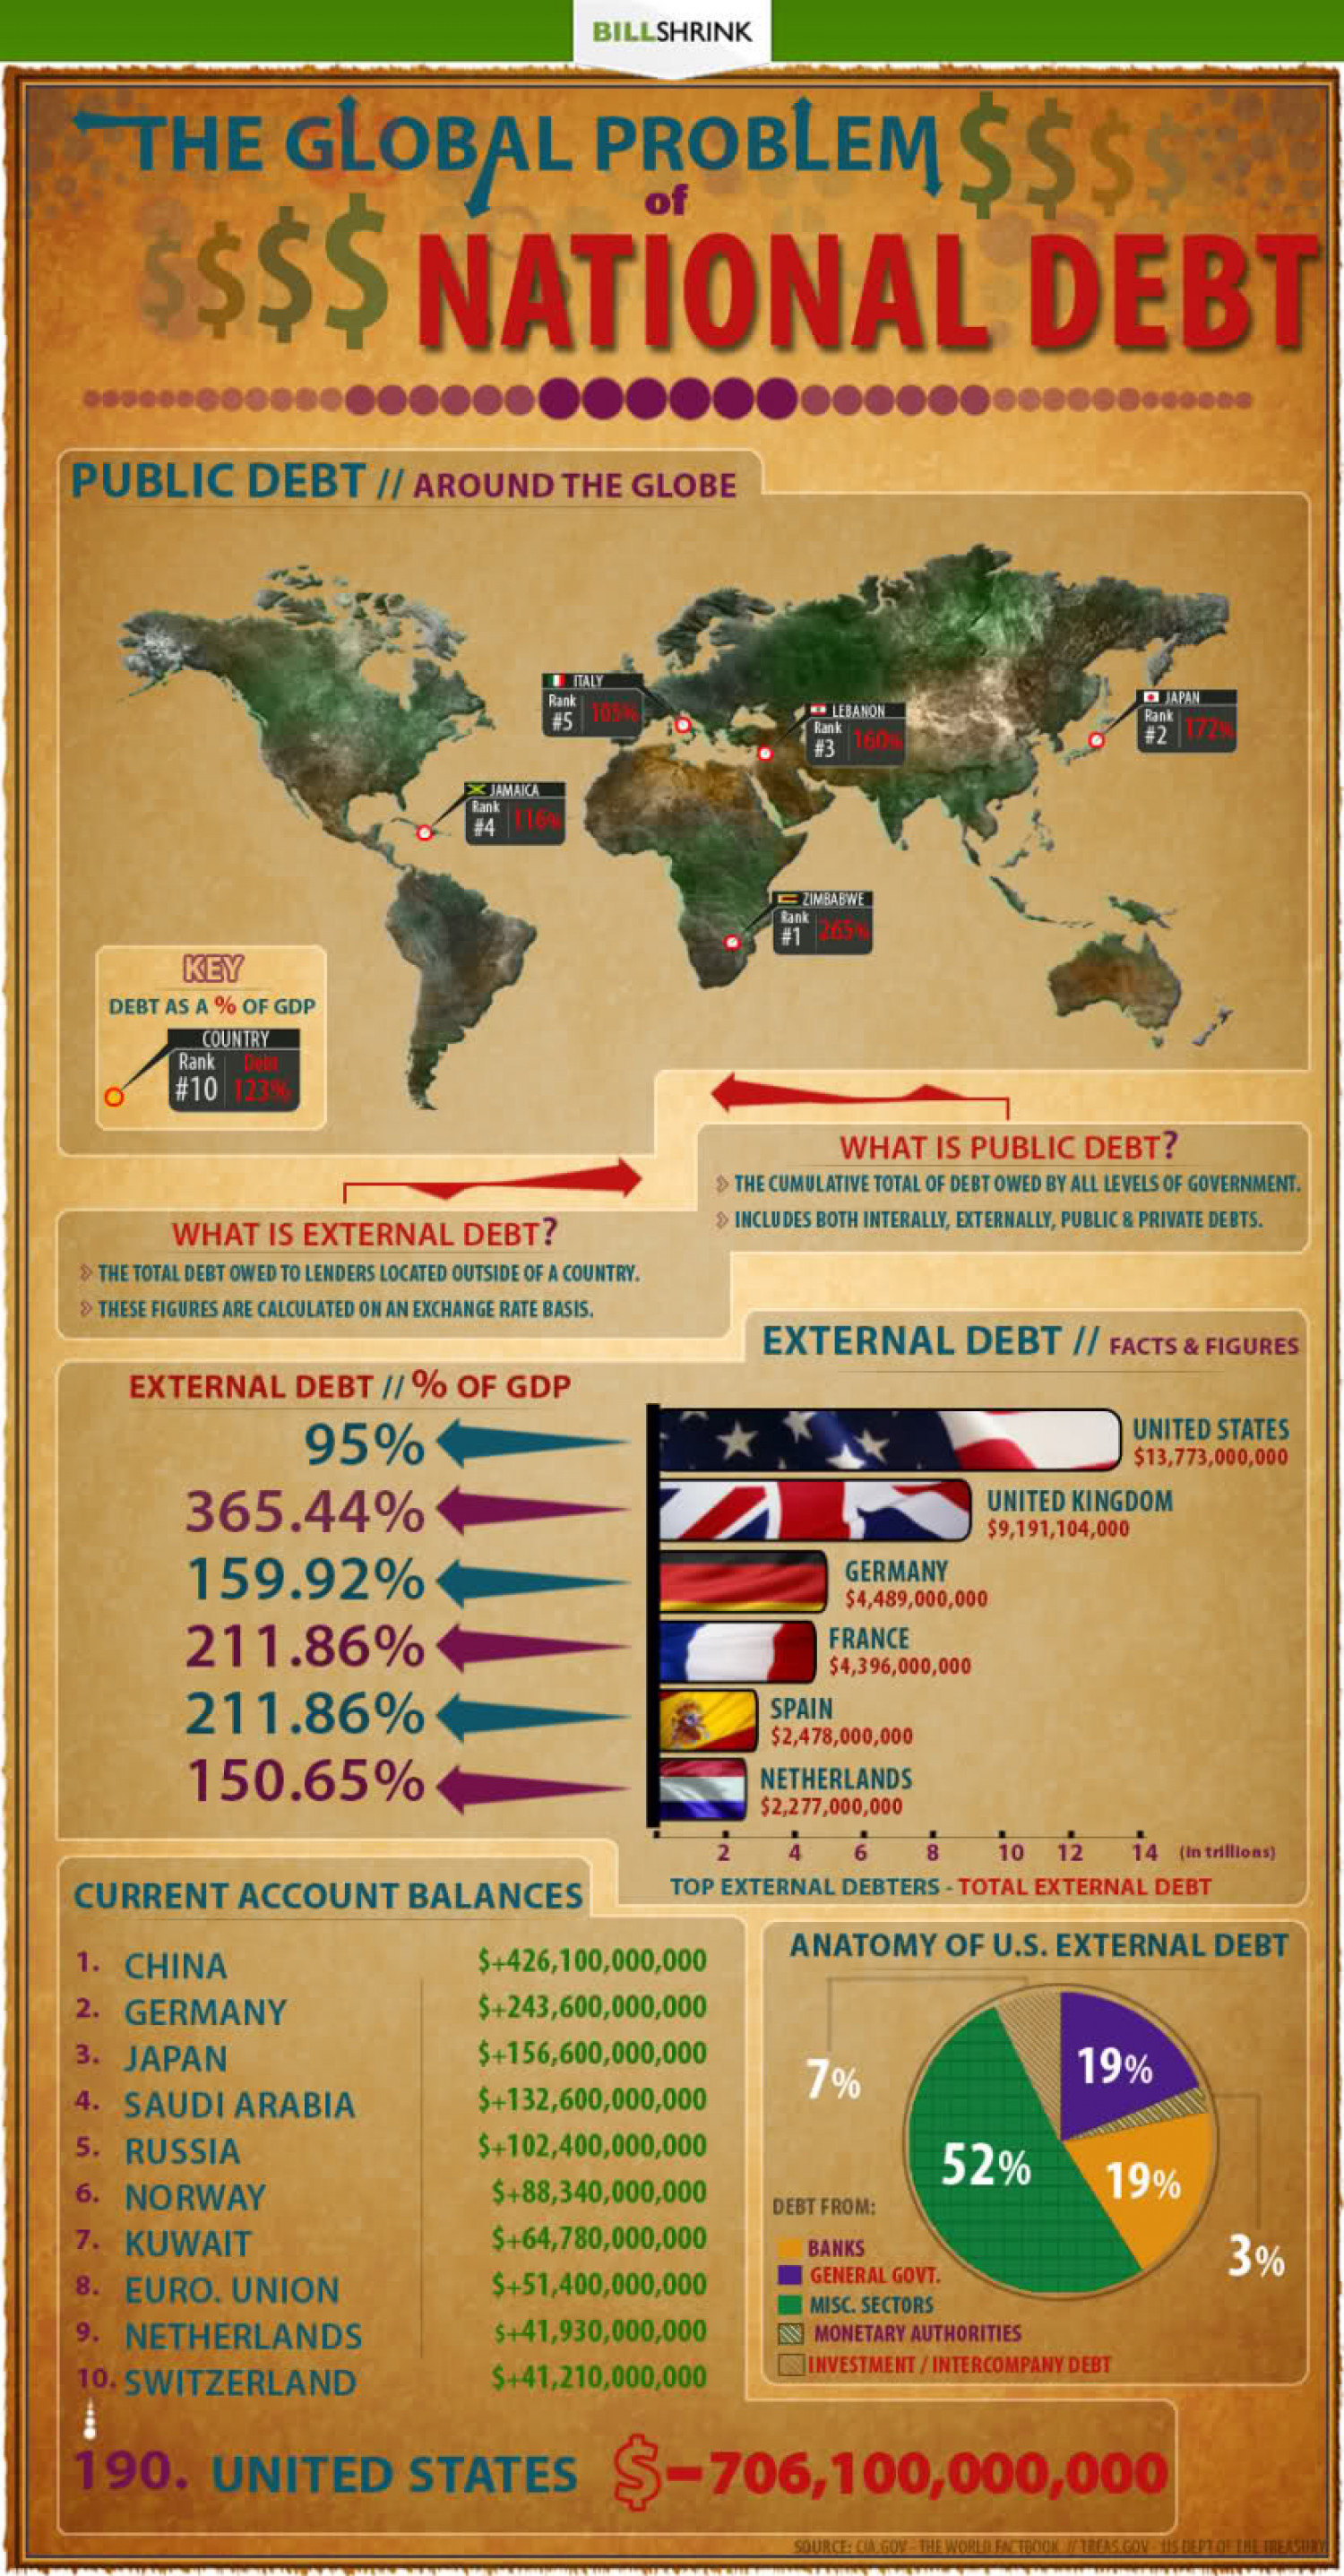 The Global Problem of National Debt Infographic